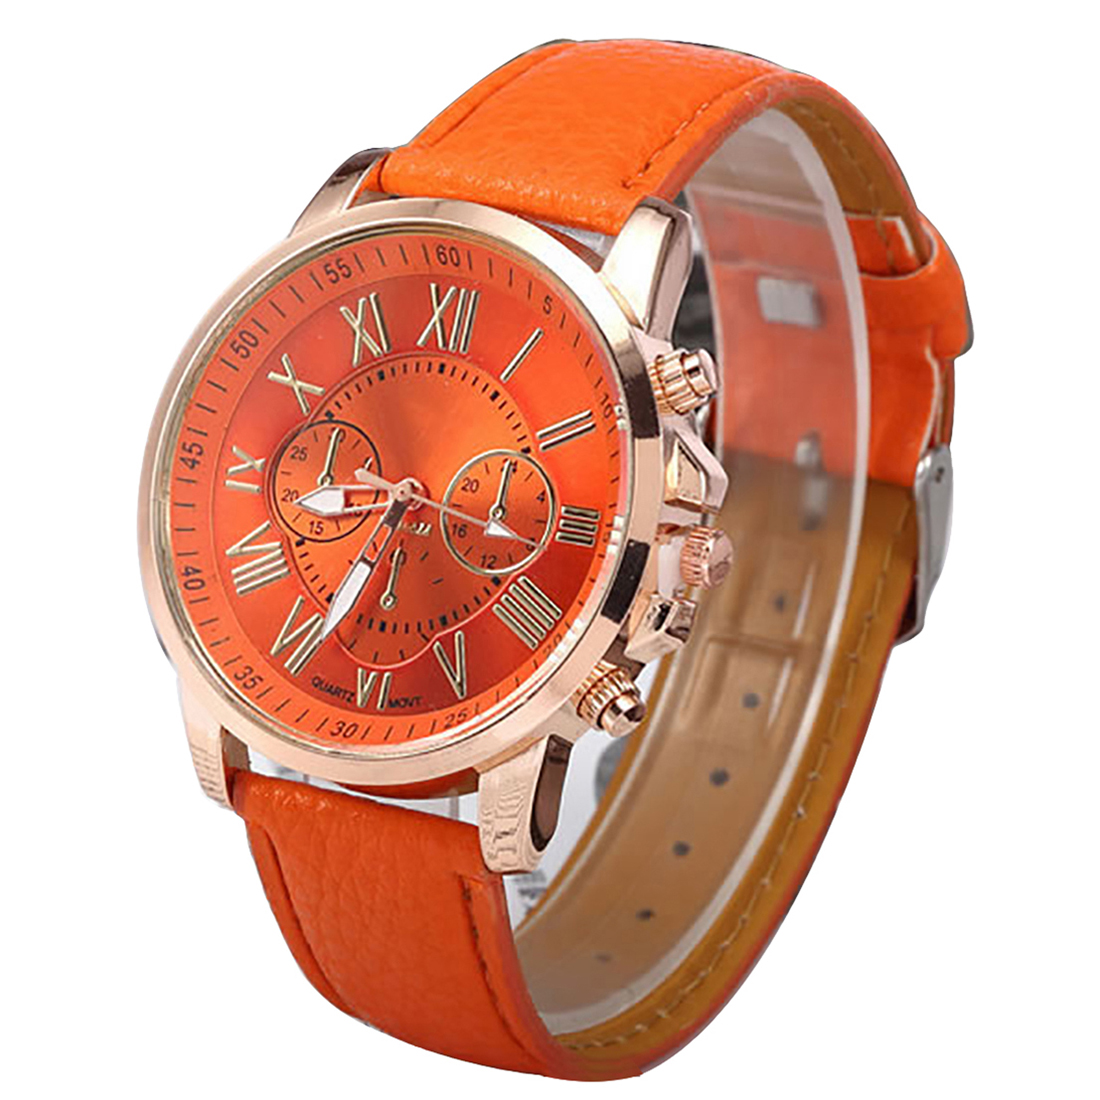 2018 hot sale orange women quartz watch leather sport wristwatch business watches new fashion relogio feminino top brand luxury 2017 new top fashion time limited relogio masculino mans watches sale sport watch blacl waterproof case quartz man wristwatches